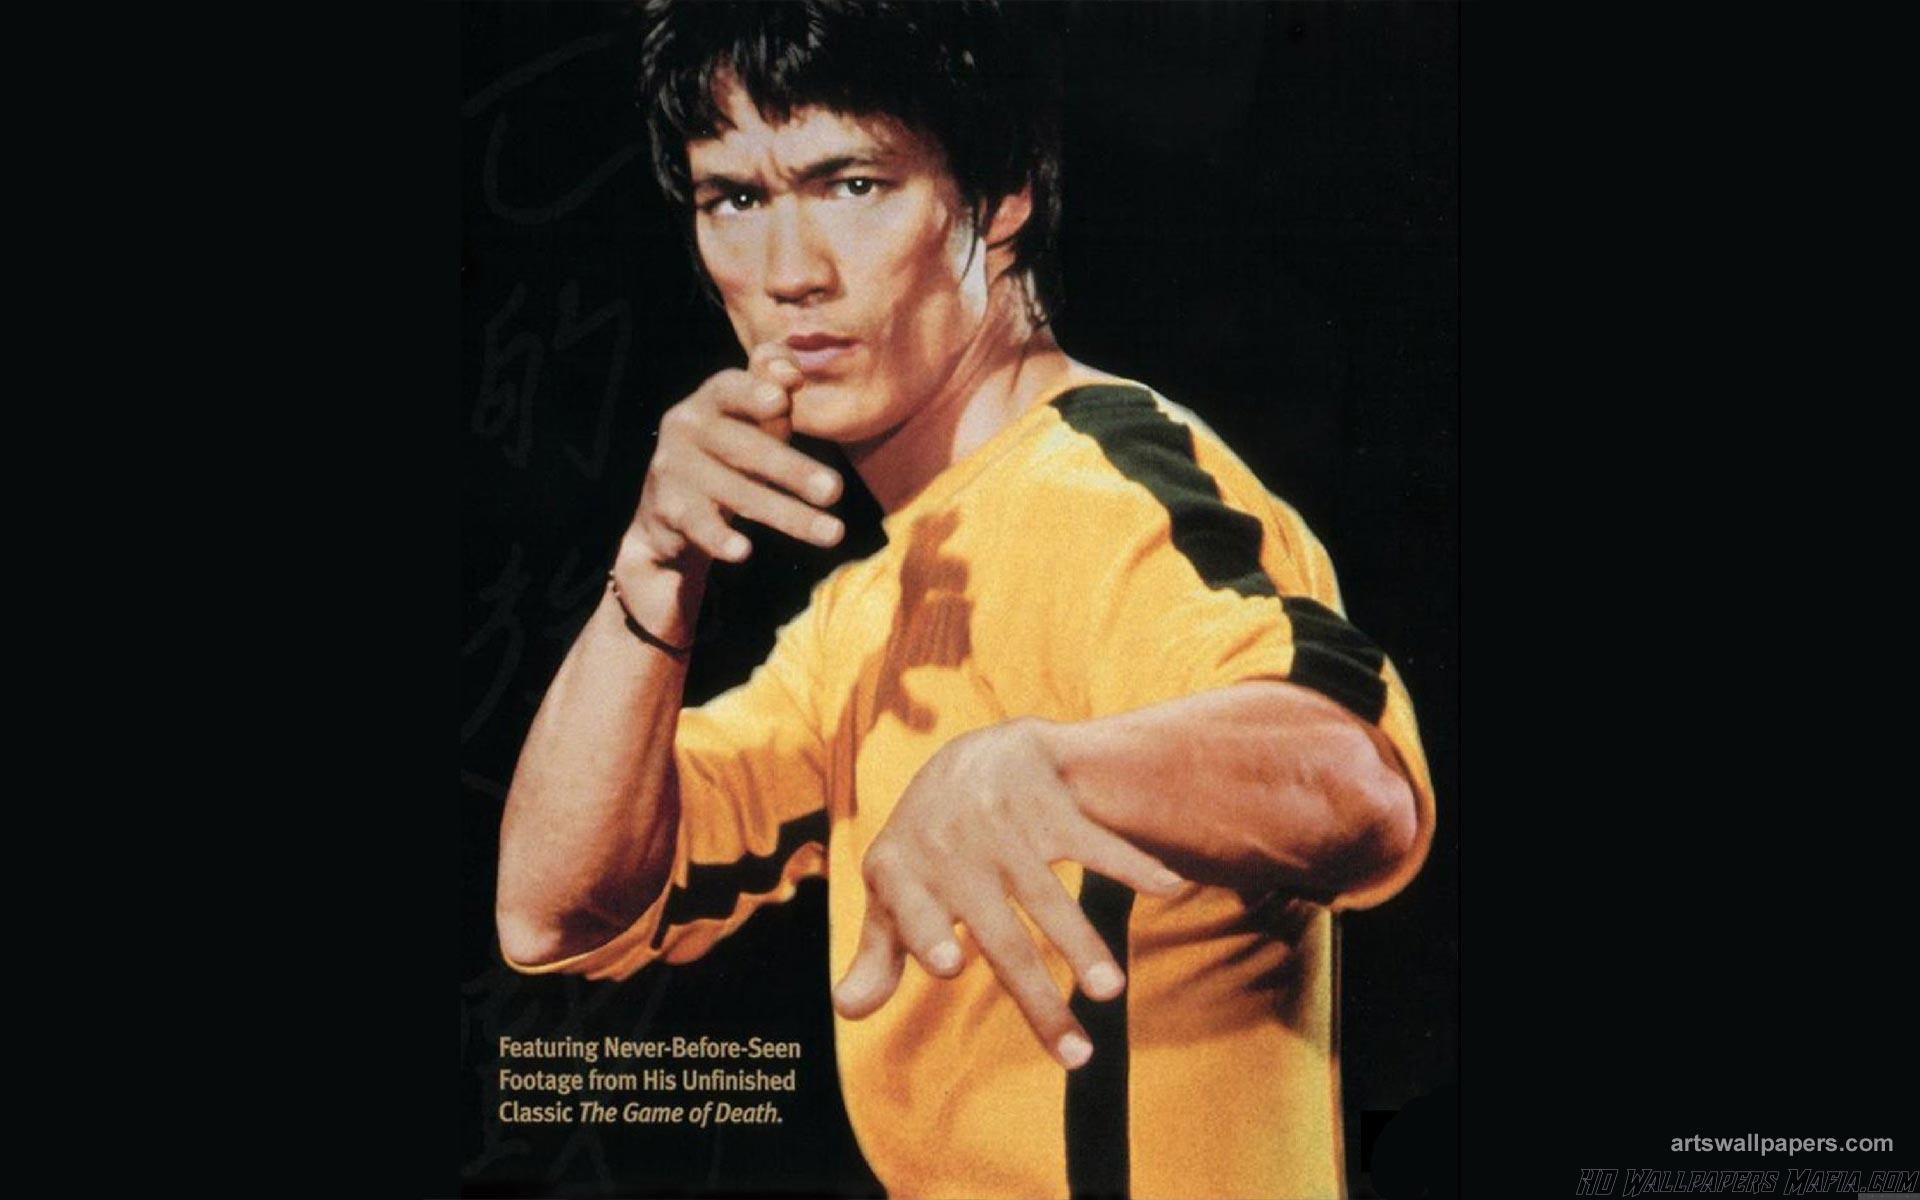 1920x1200 - Bruce Lee Wallpapers 17